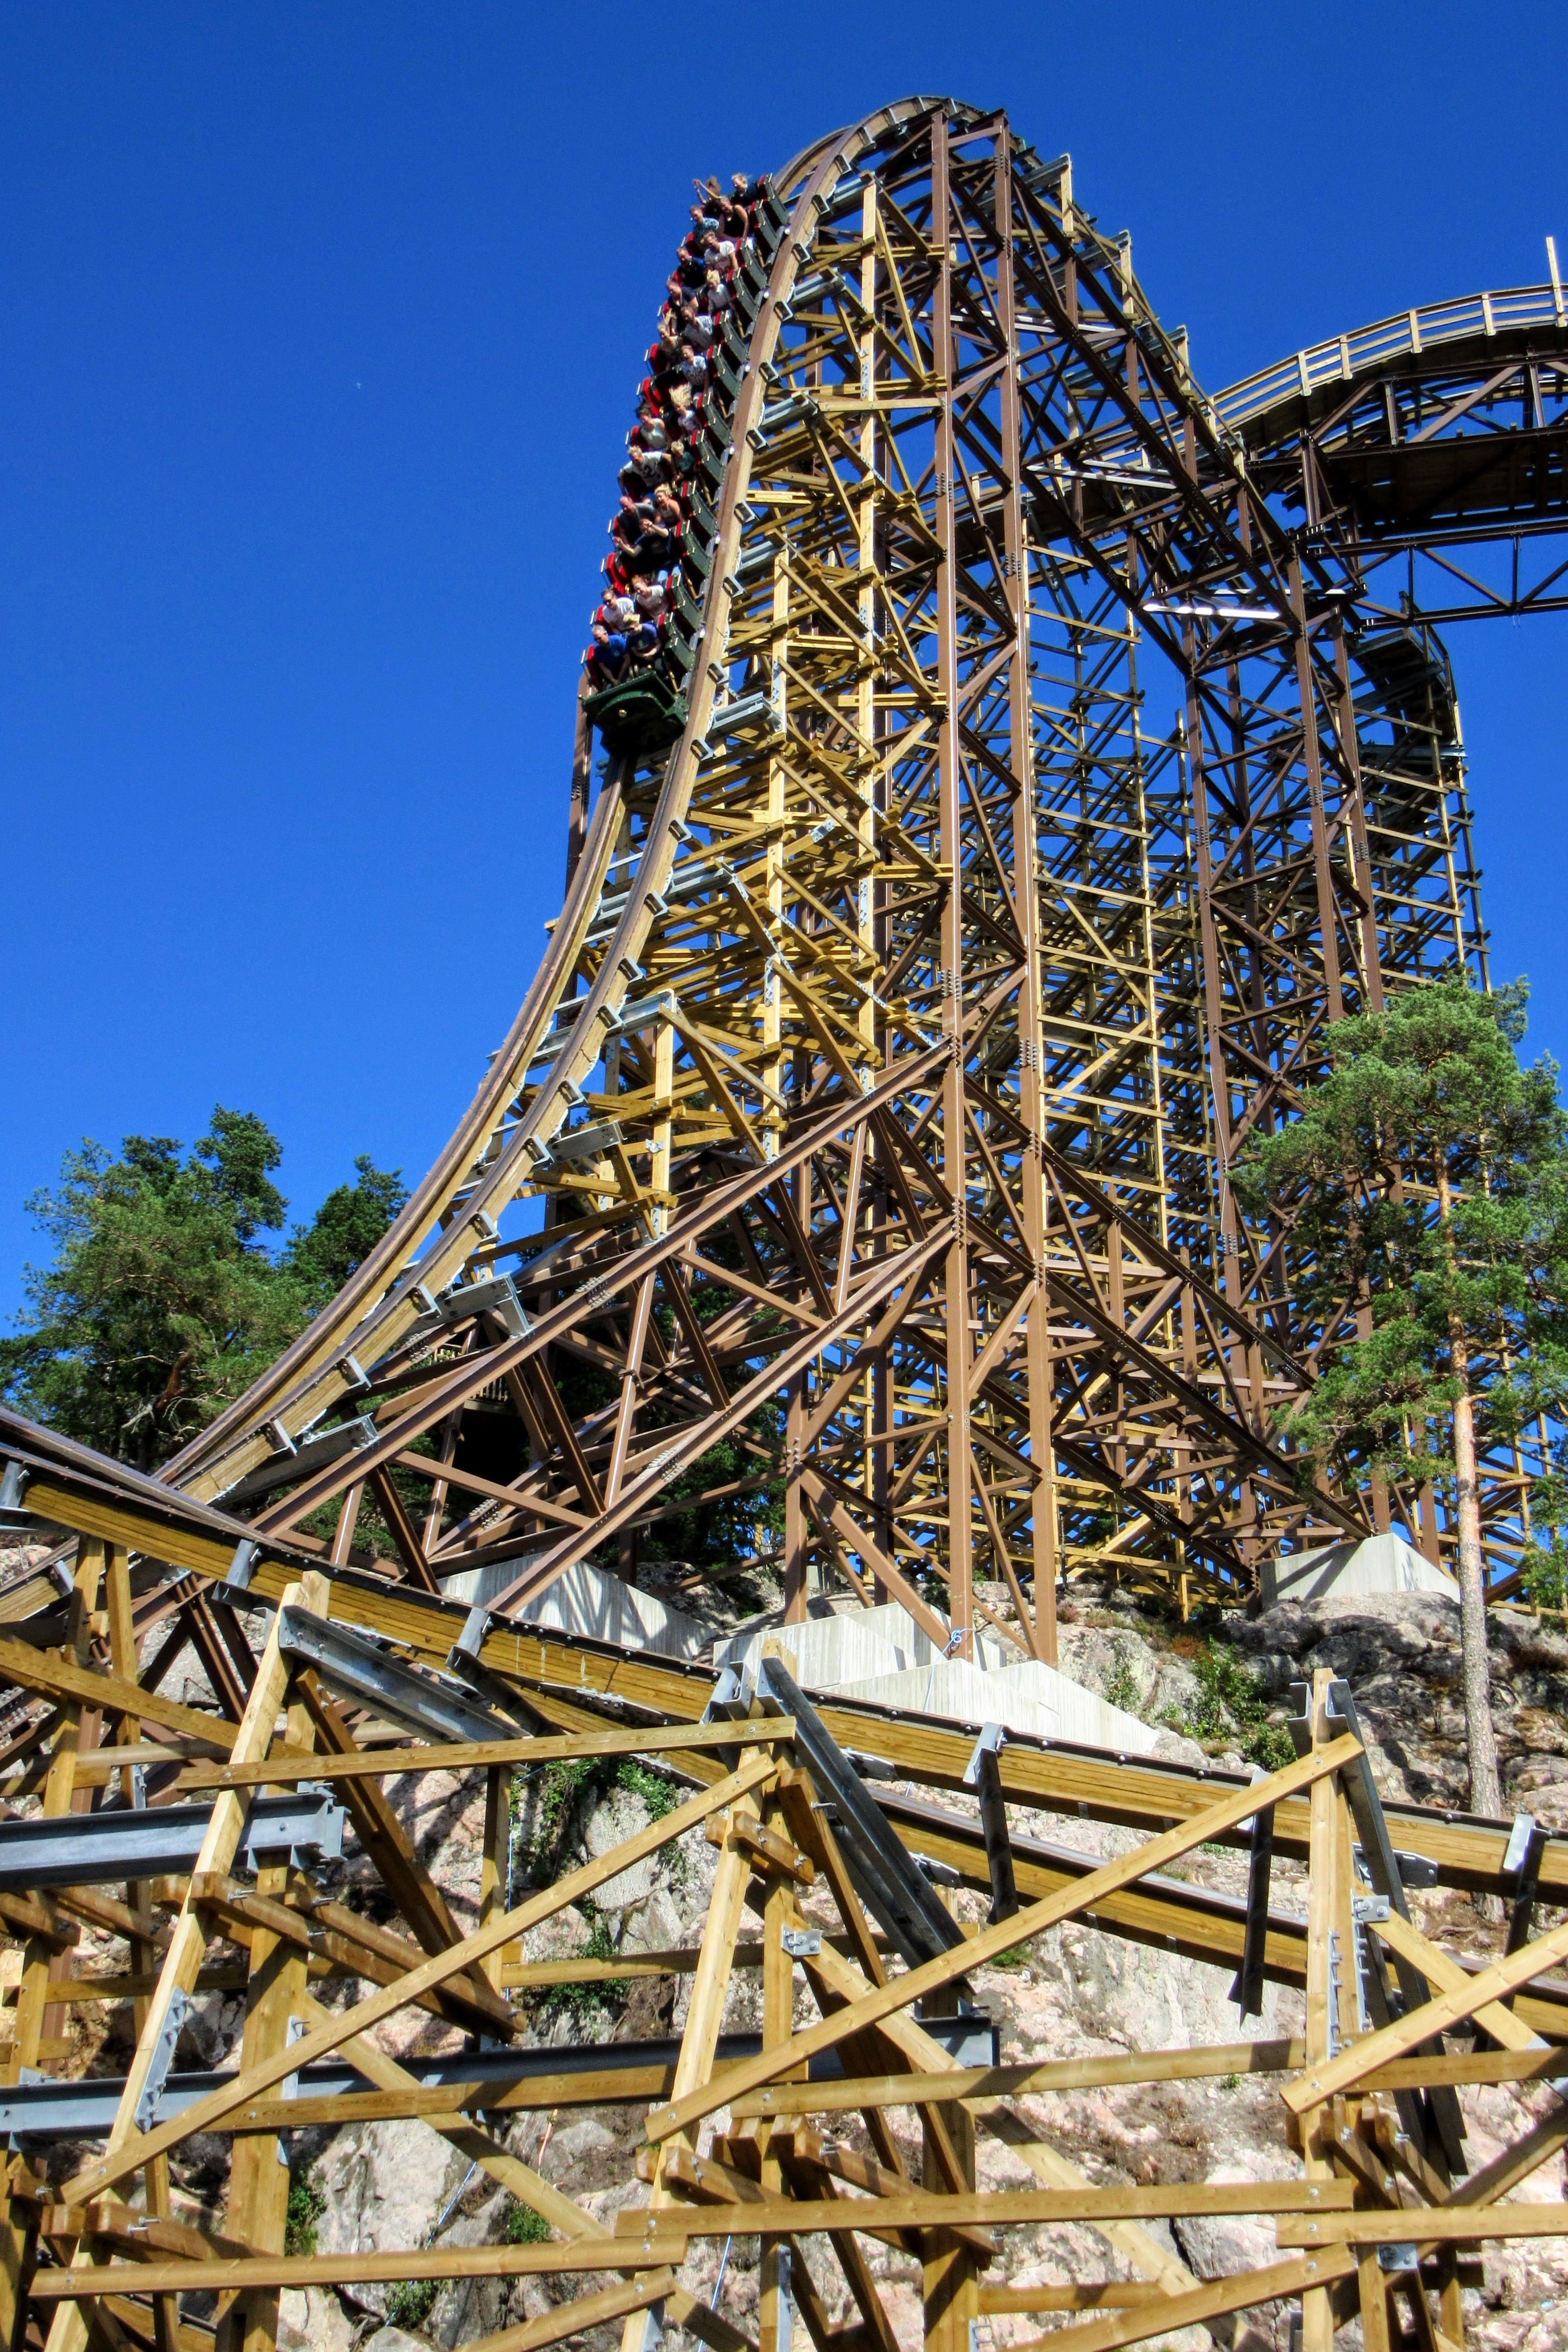 The first drop on Wildfire at Kolmården.